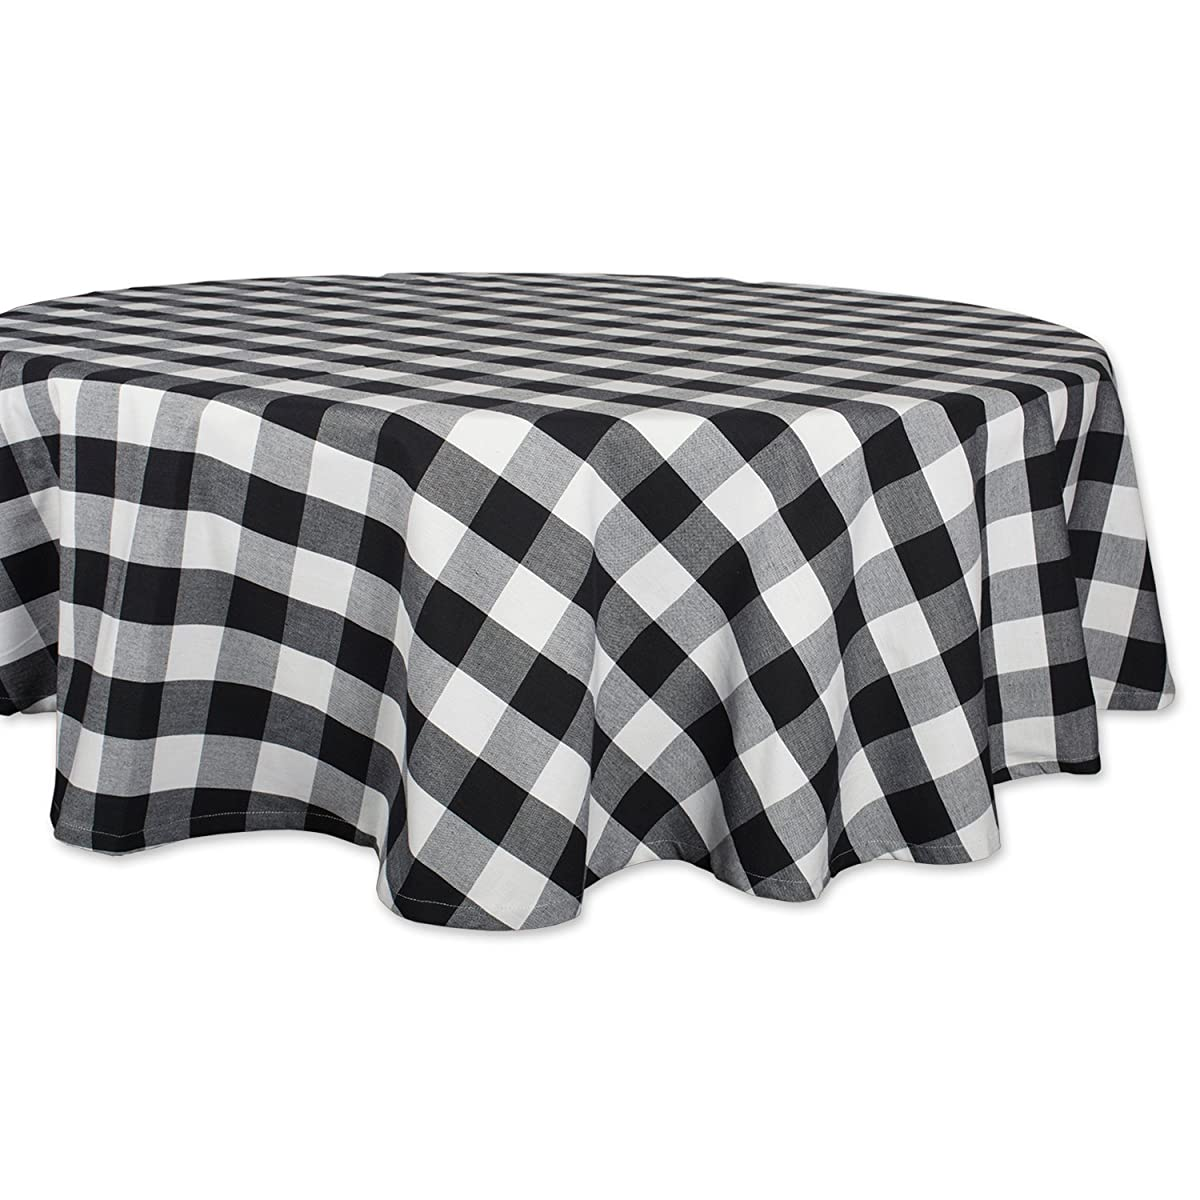 "DII Cotton Buffalo Check Plaid Round Tablecloth for Family Dinners or Gatherings, Indoor or Outdoor Parties, & Everyday Use (70x70"",Seats 4-6 People), Black & White"